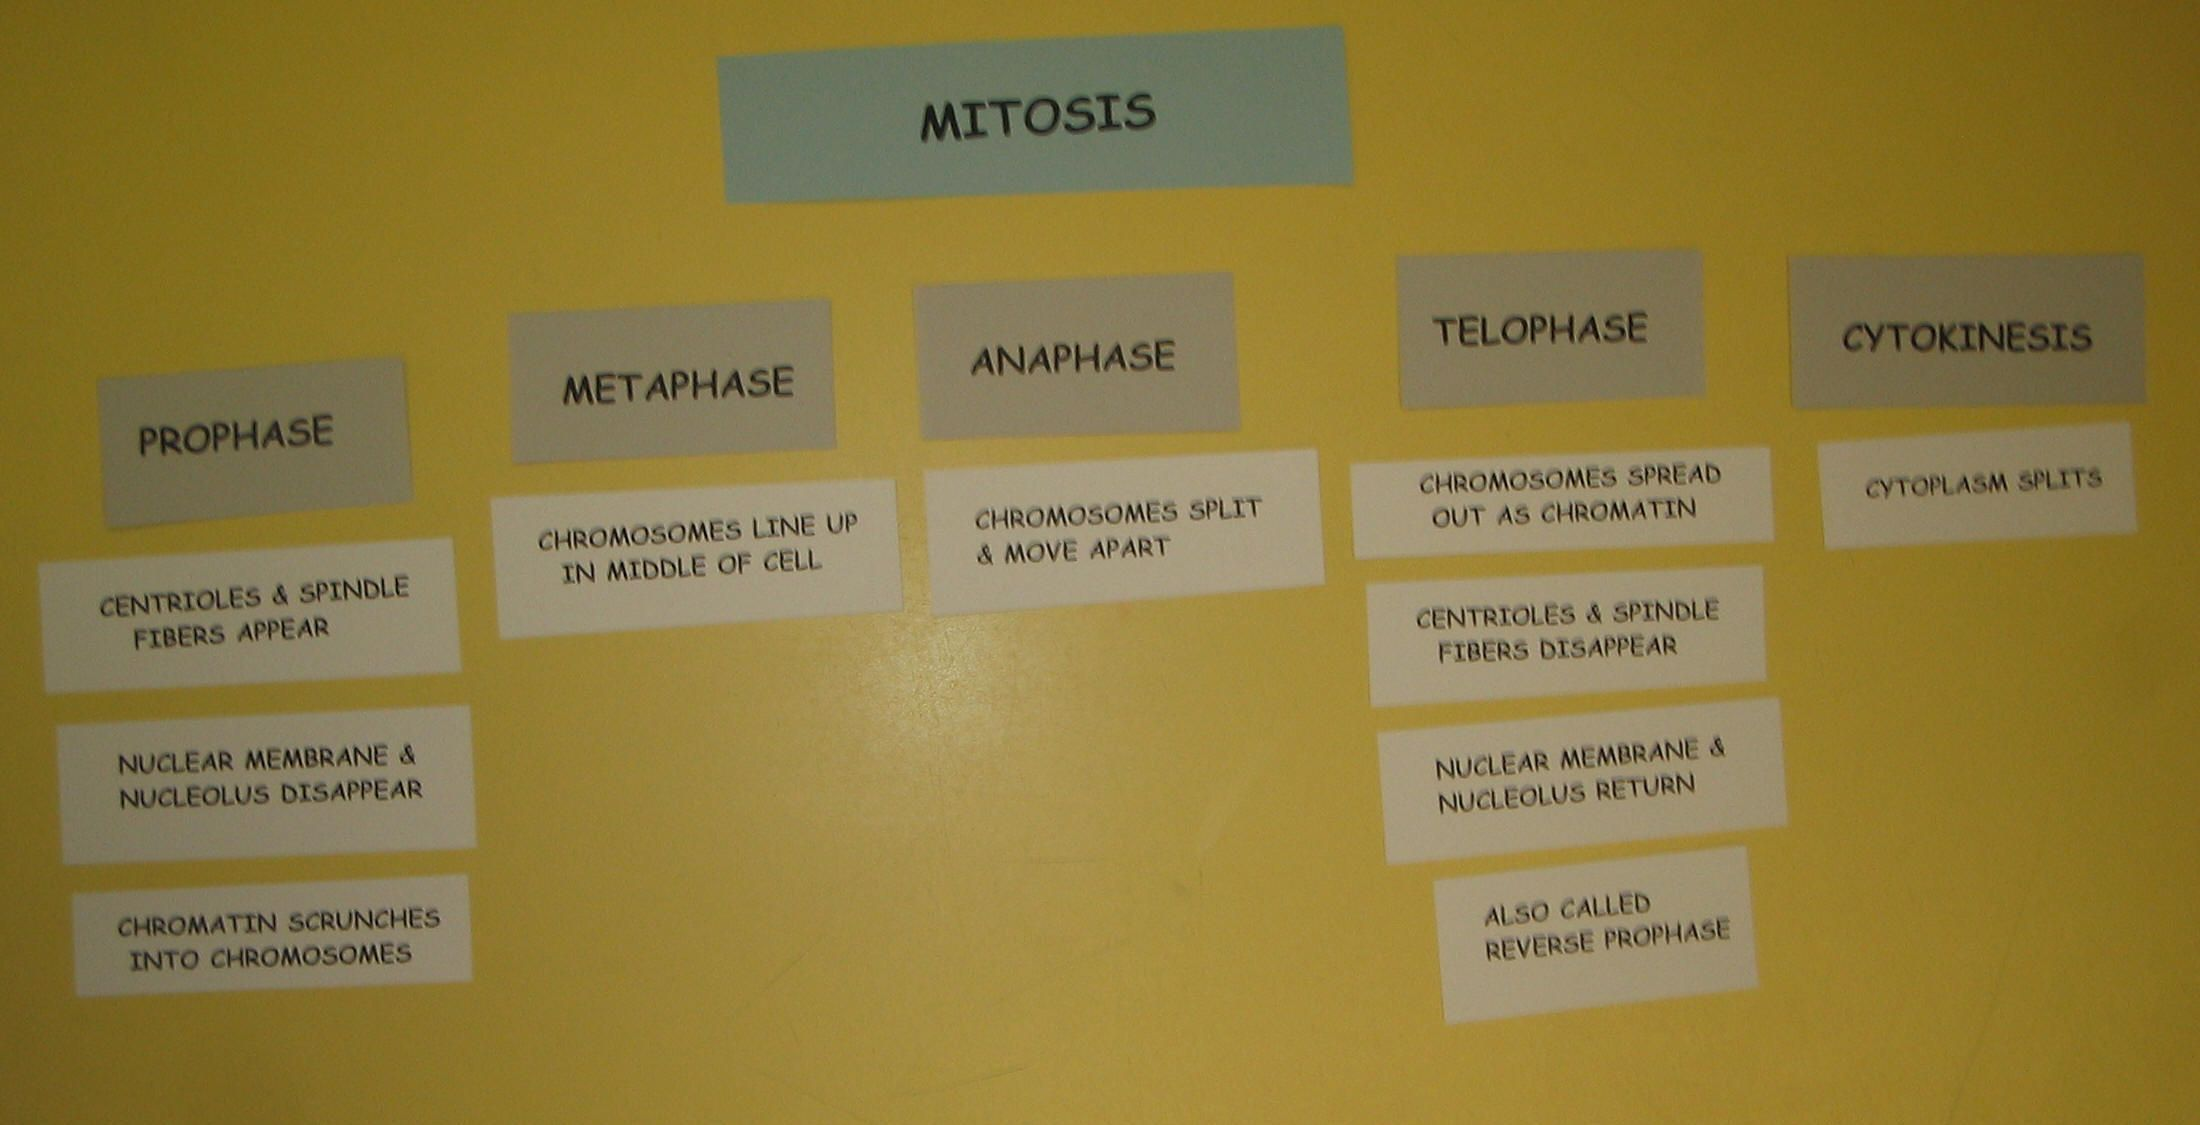 Descriptions For Mitosis Phases